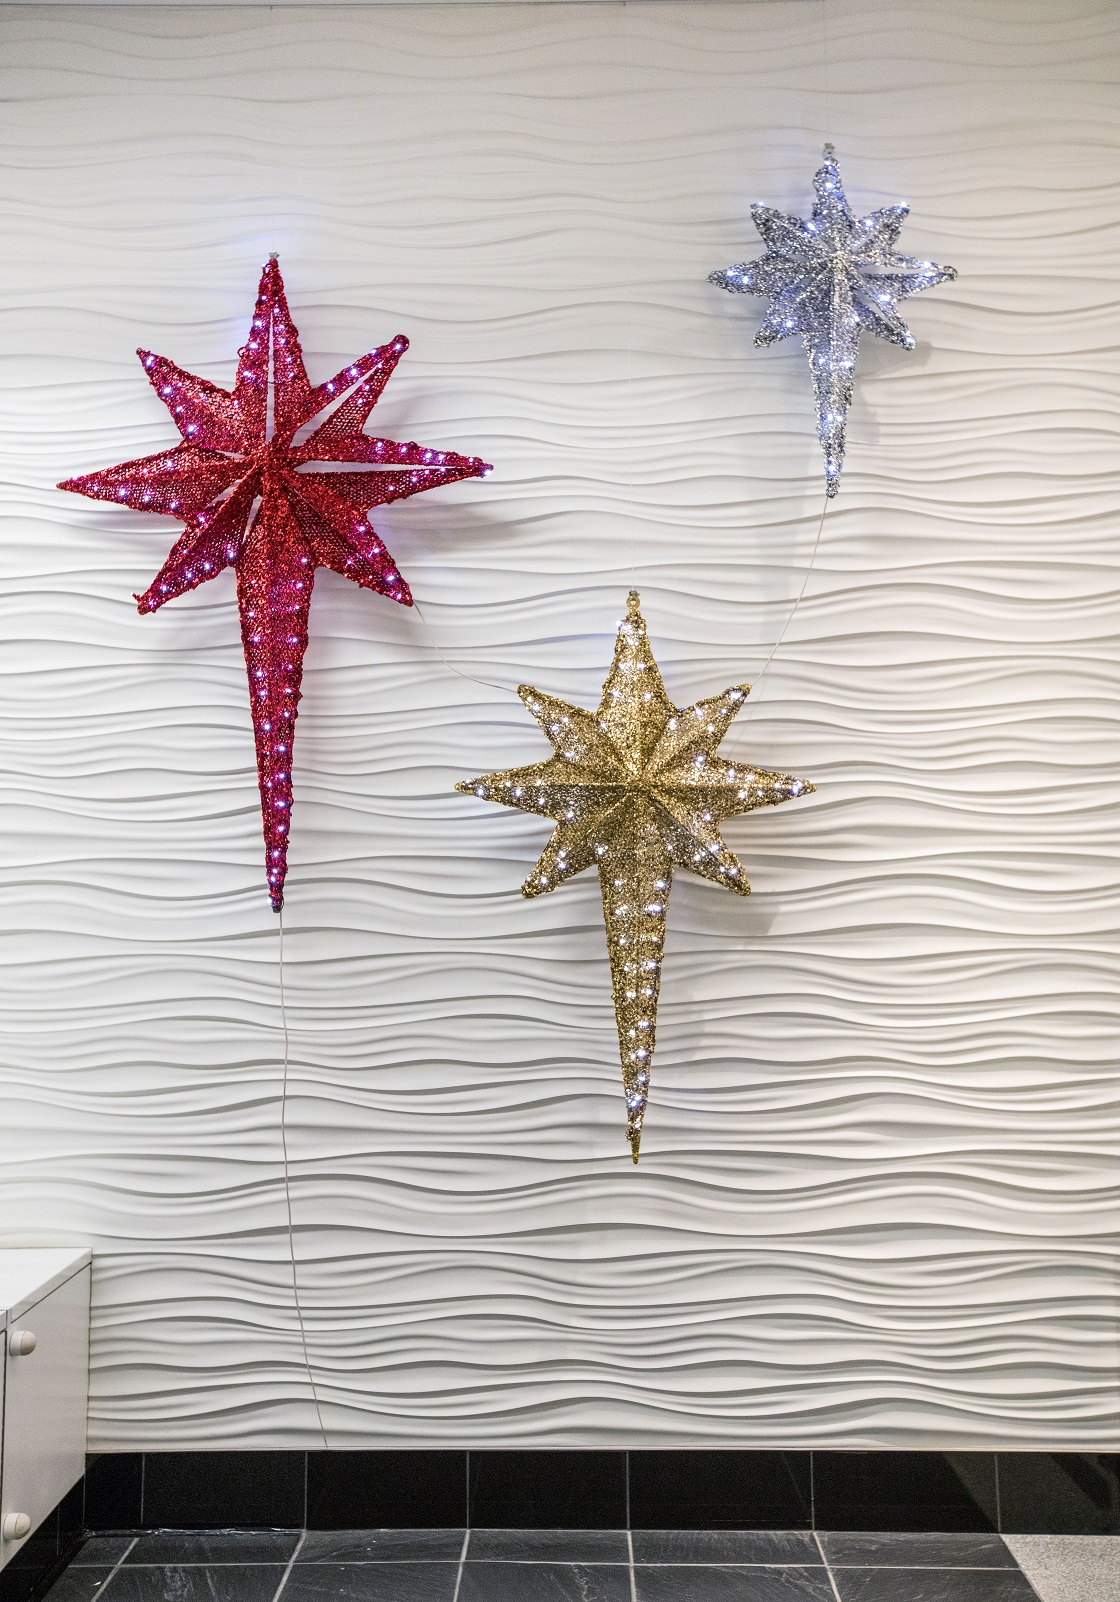 Creative sculptures and 3D letters come together to light up this contemporary lobby through the holiday season